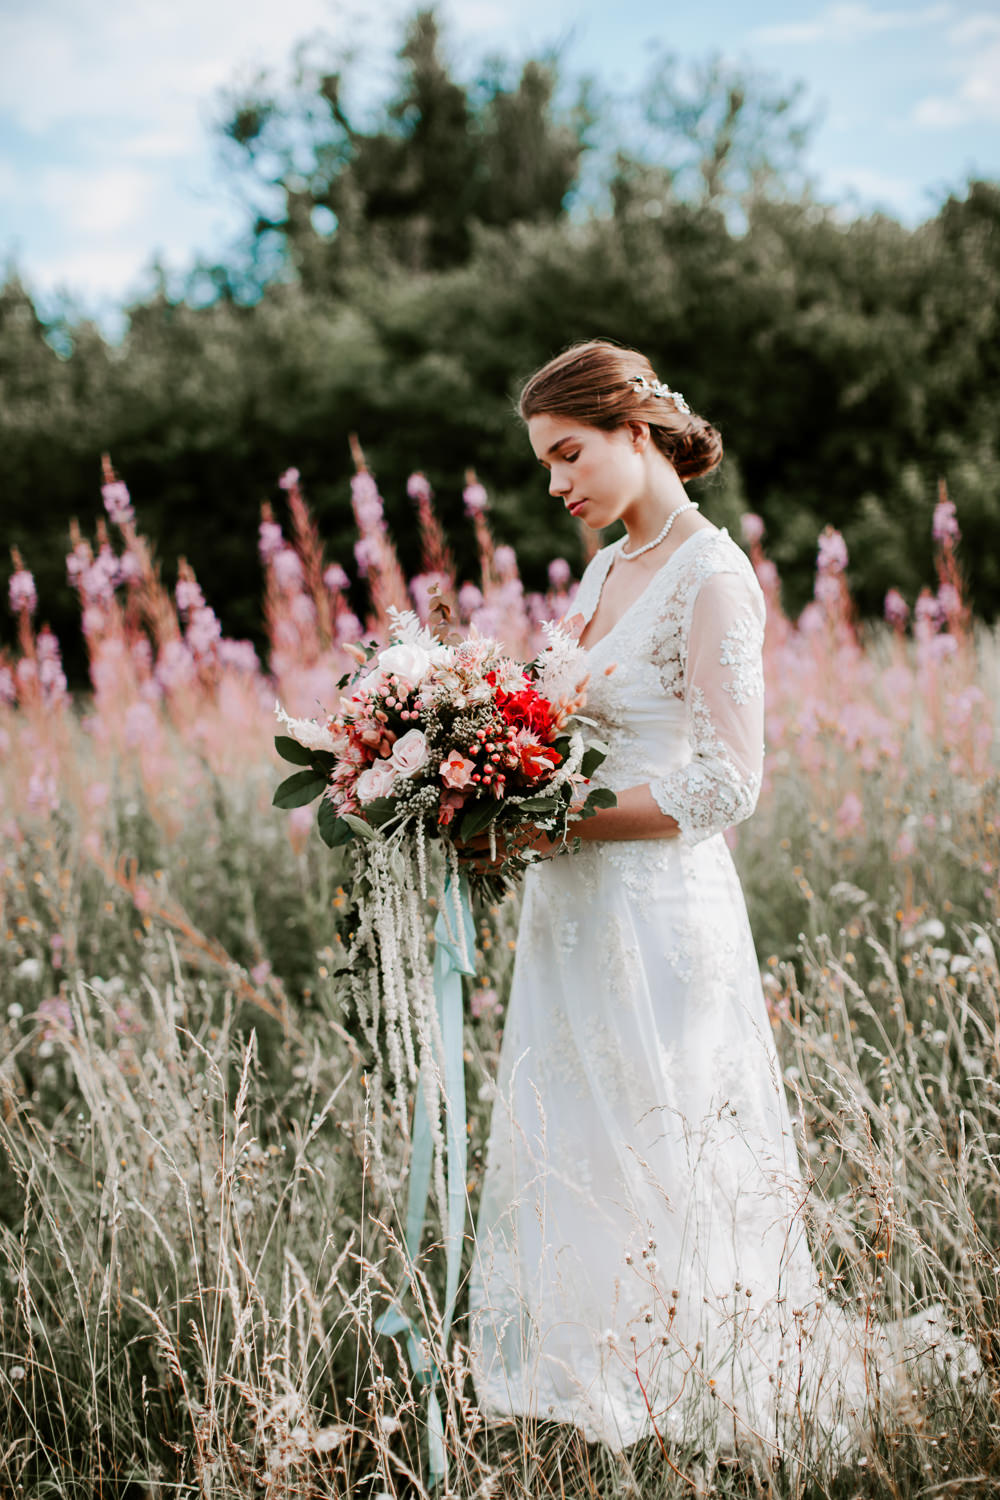 Bouquet Flowers Bride Bridal Red Pink Rose Ribbons Hydrangea Berries Whimsical Wedding Ideas Charlotte Lucy Photography